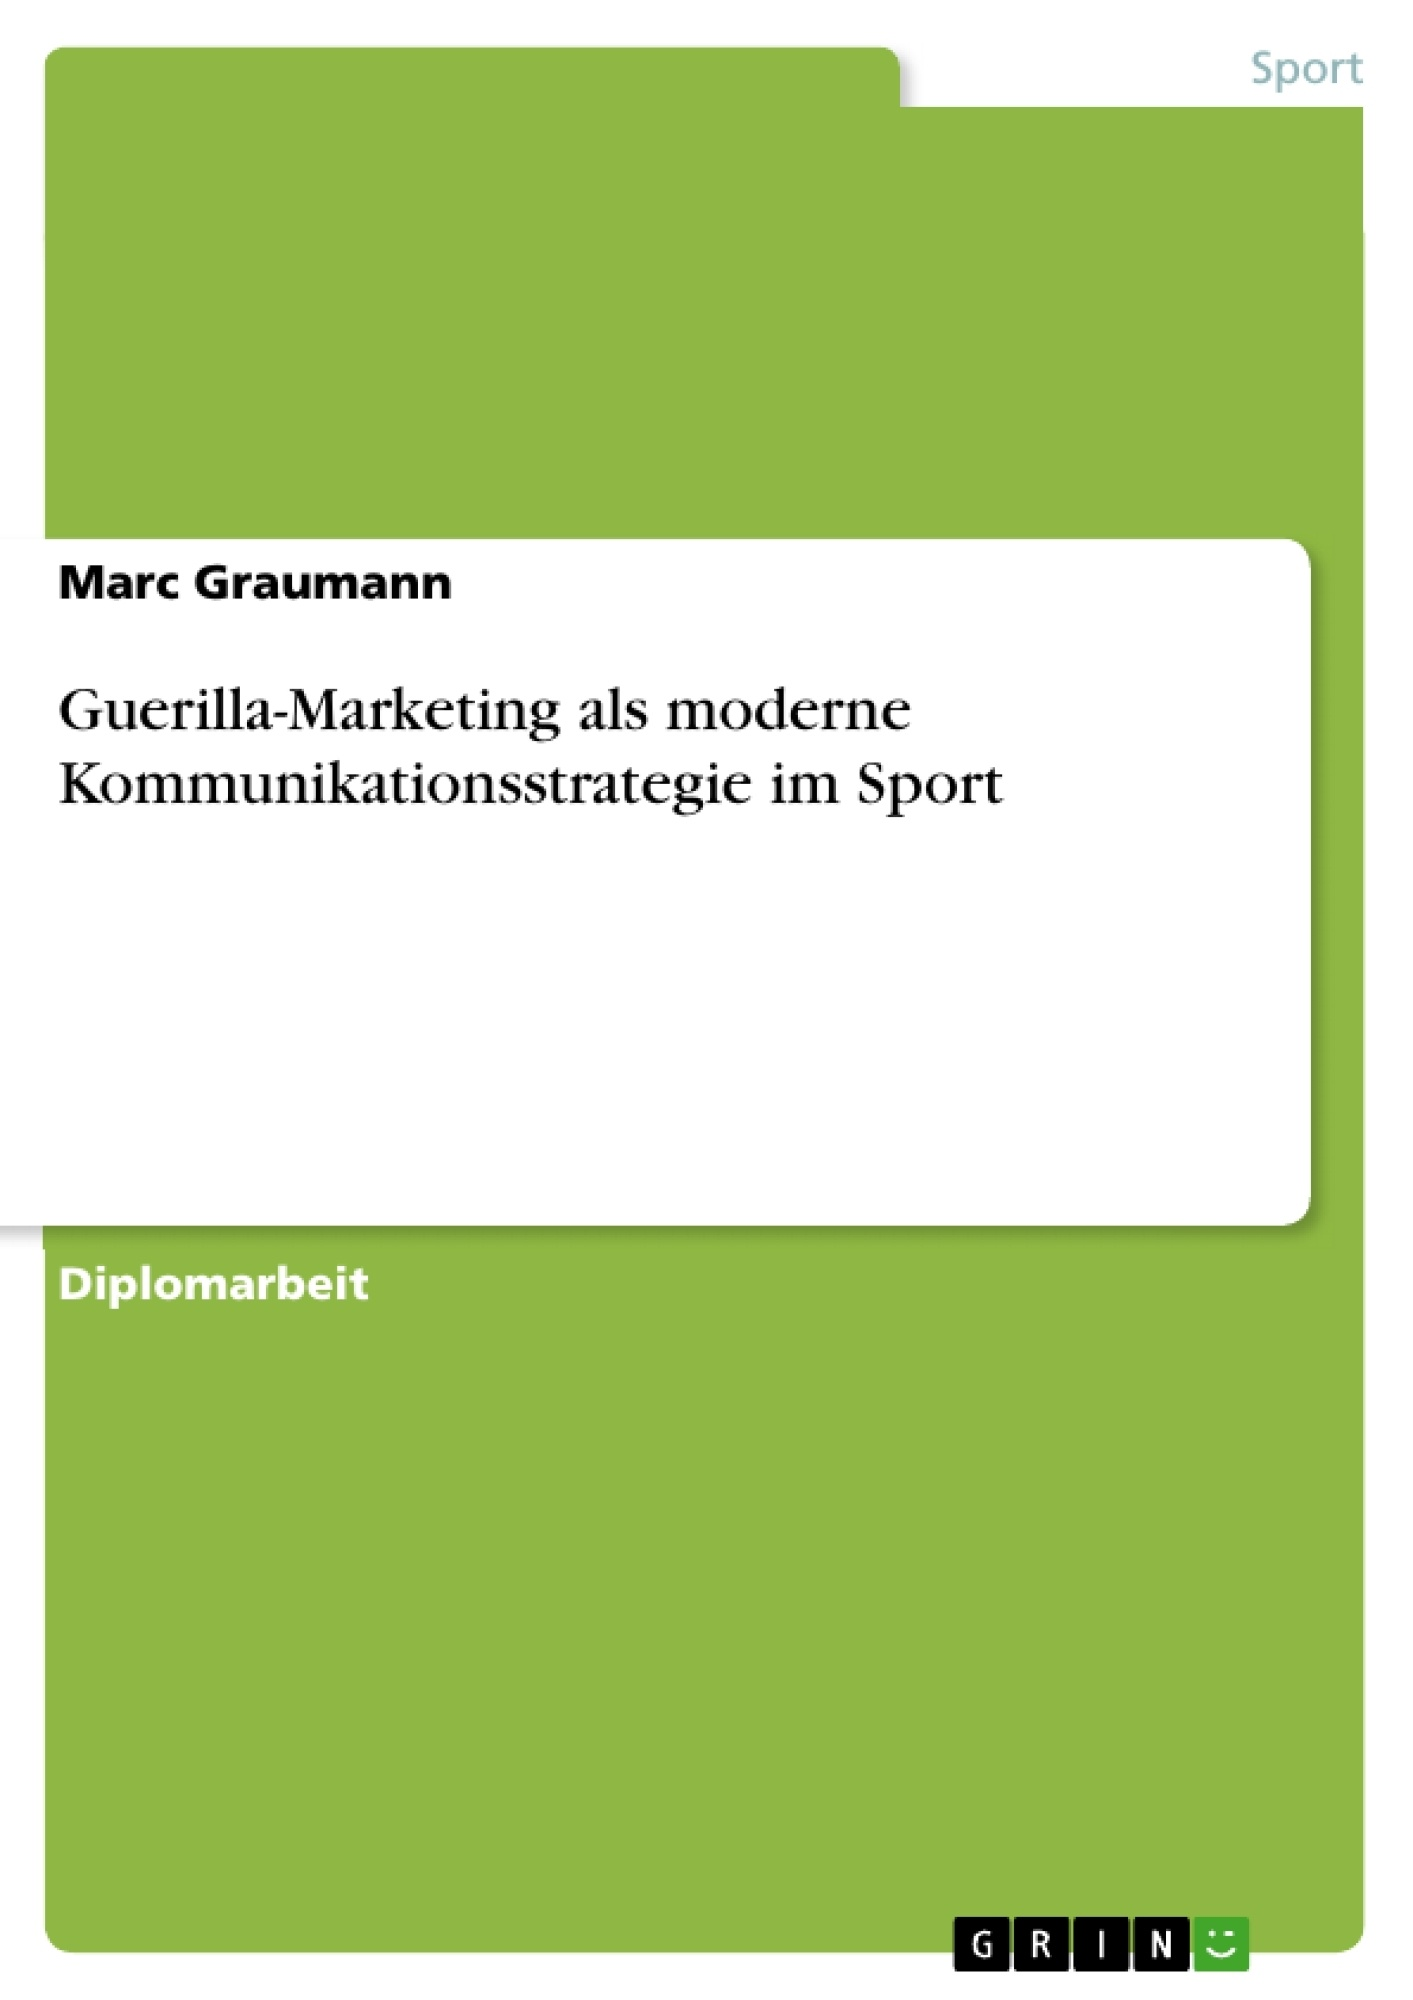 Titel: Guerilla-Marketing als moderne Kommunikationsstrategie im Sport